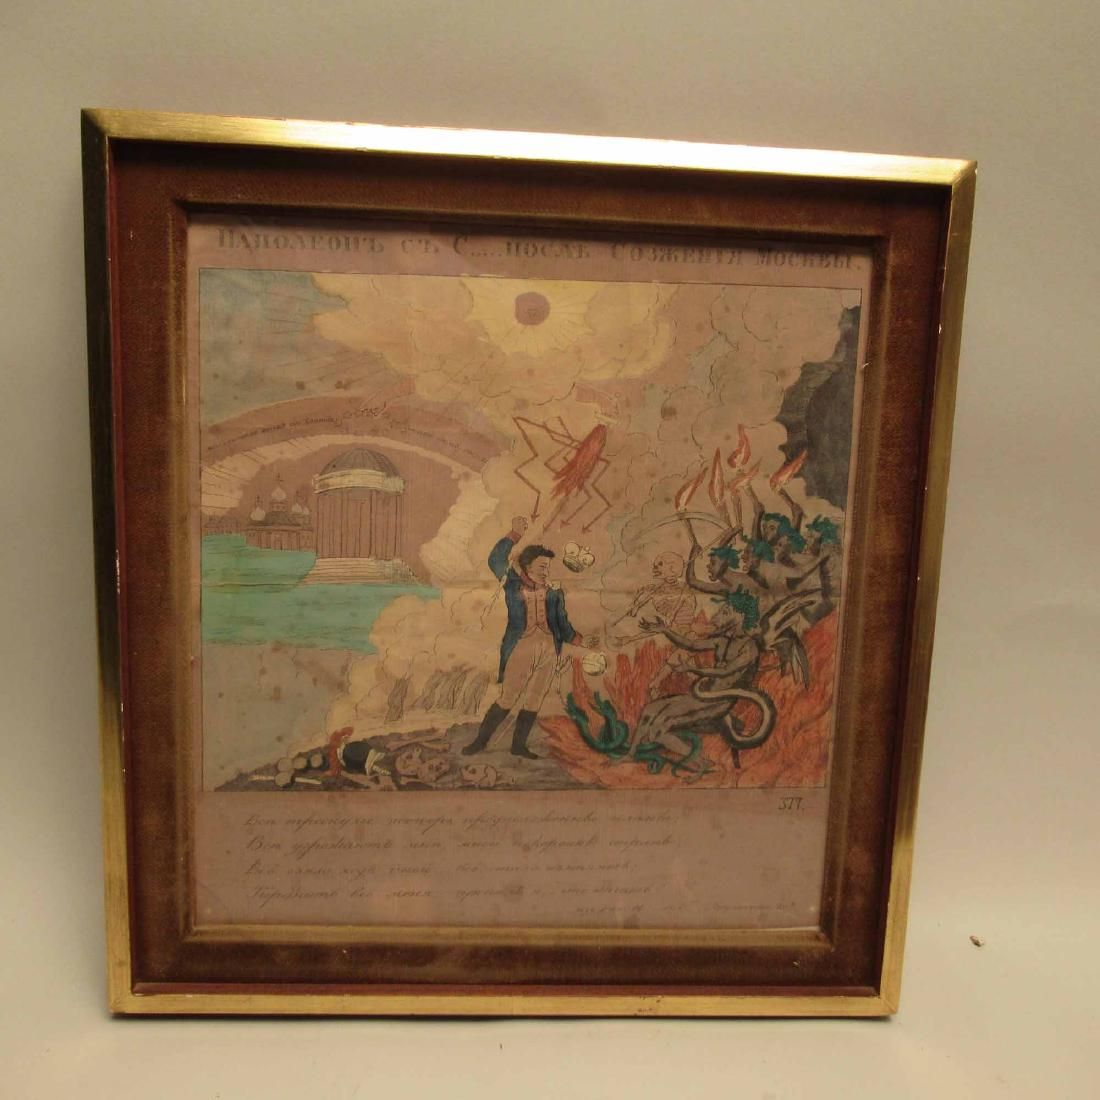 HAND COLORED ENGRAVING